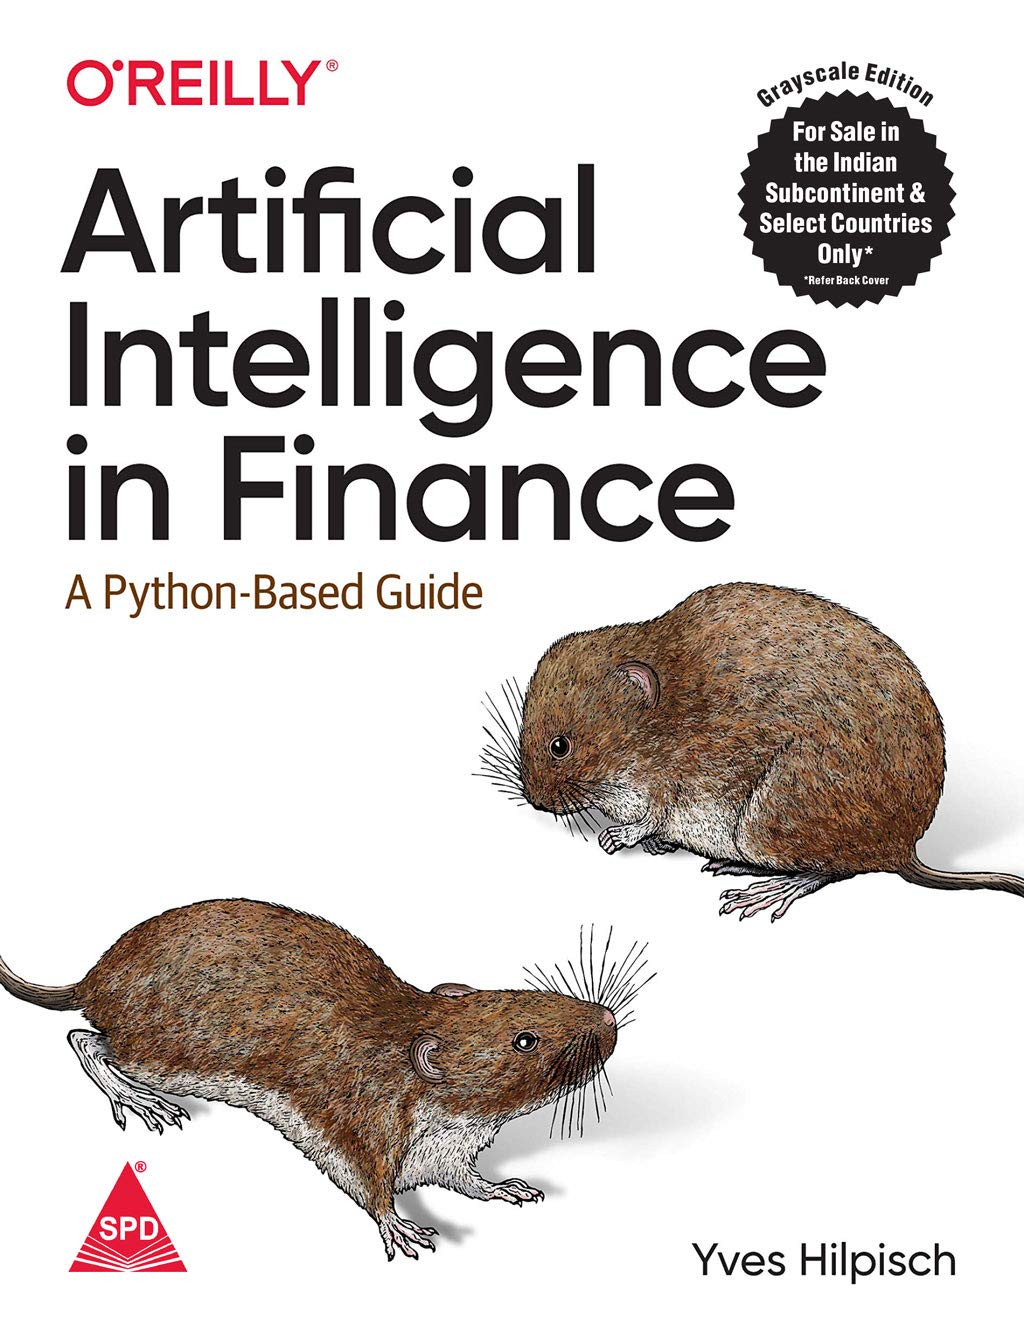 Artificial Intelligence in Finance: A Python-Based Guide (Grayscale Indian Edition)